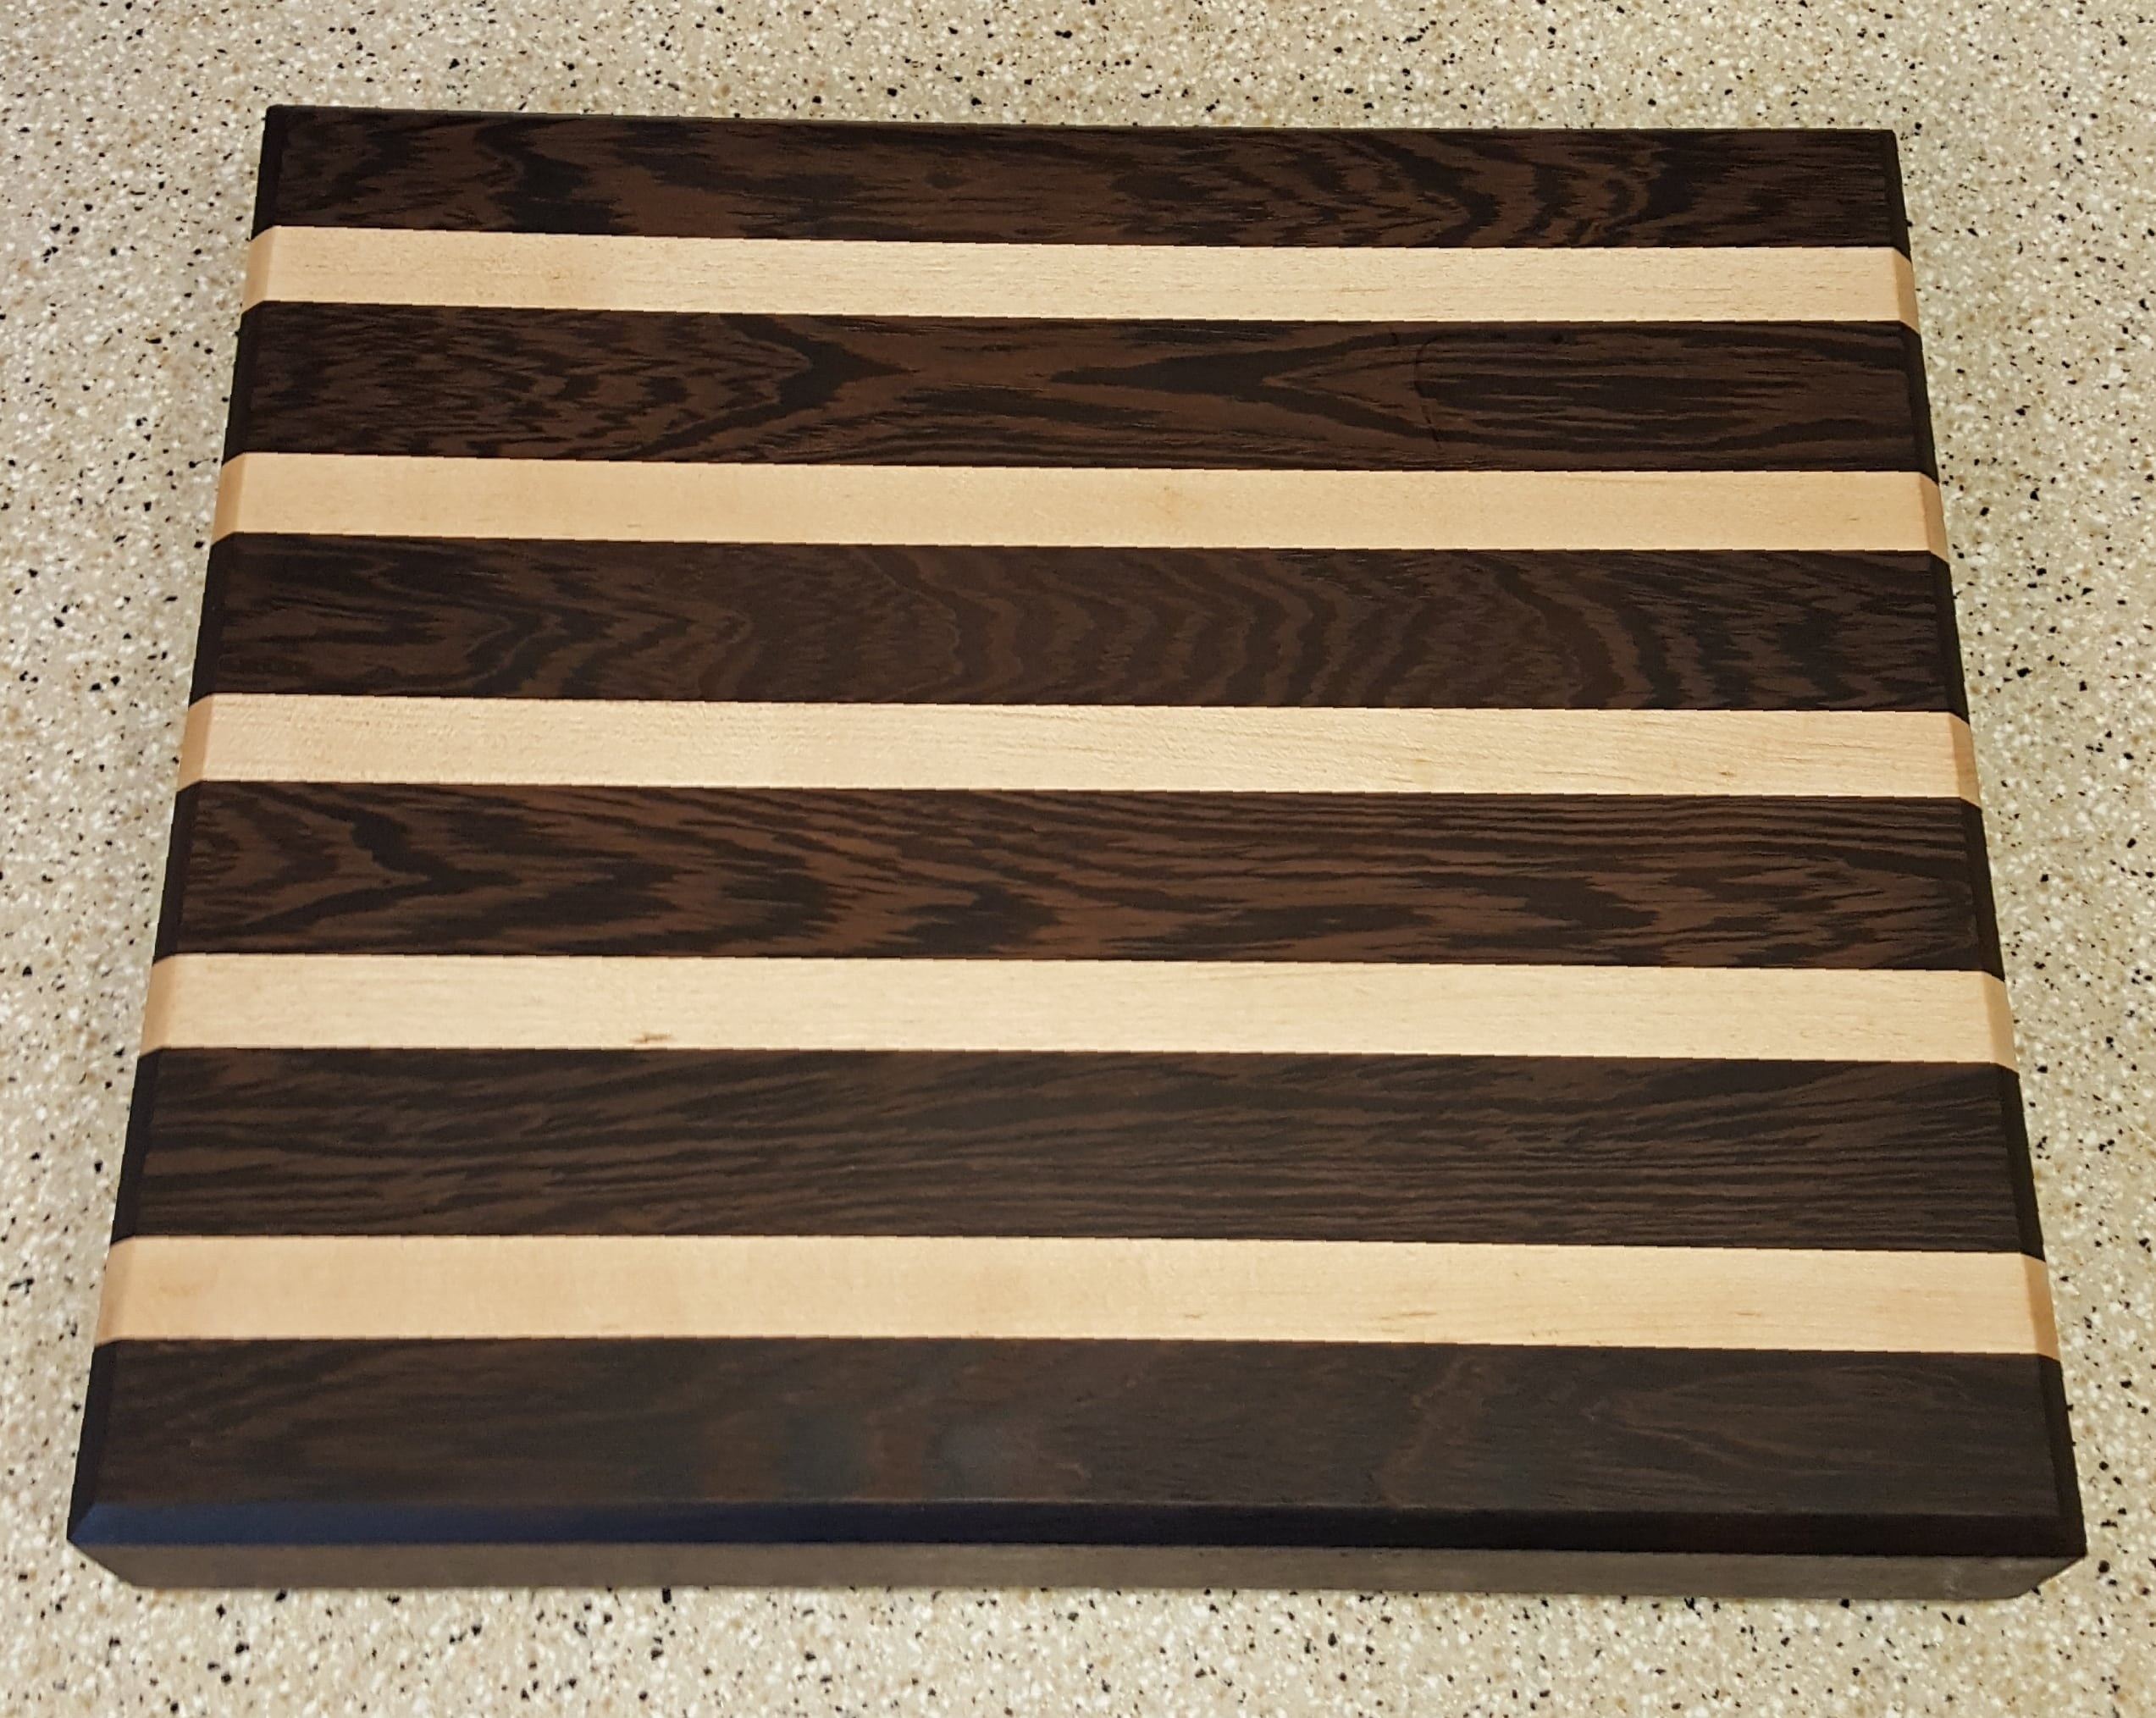 Custom Wood Cutting Boards by Elite Craftsmen